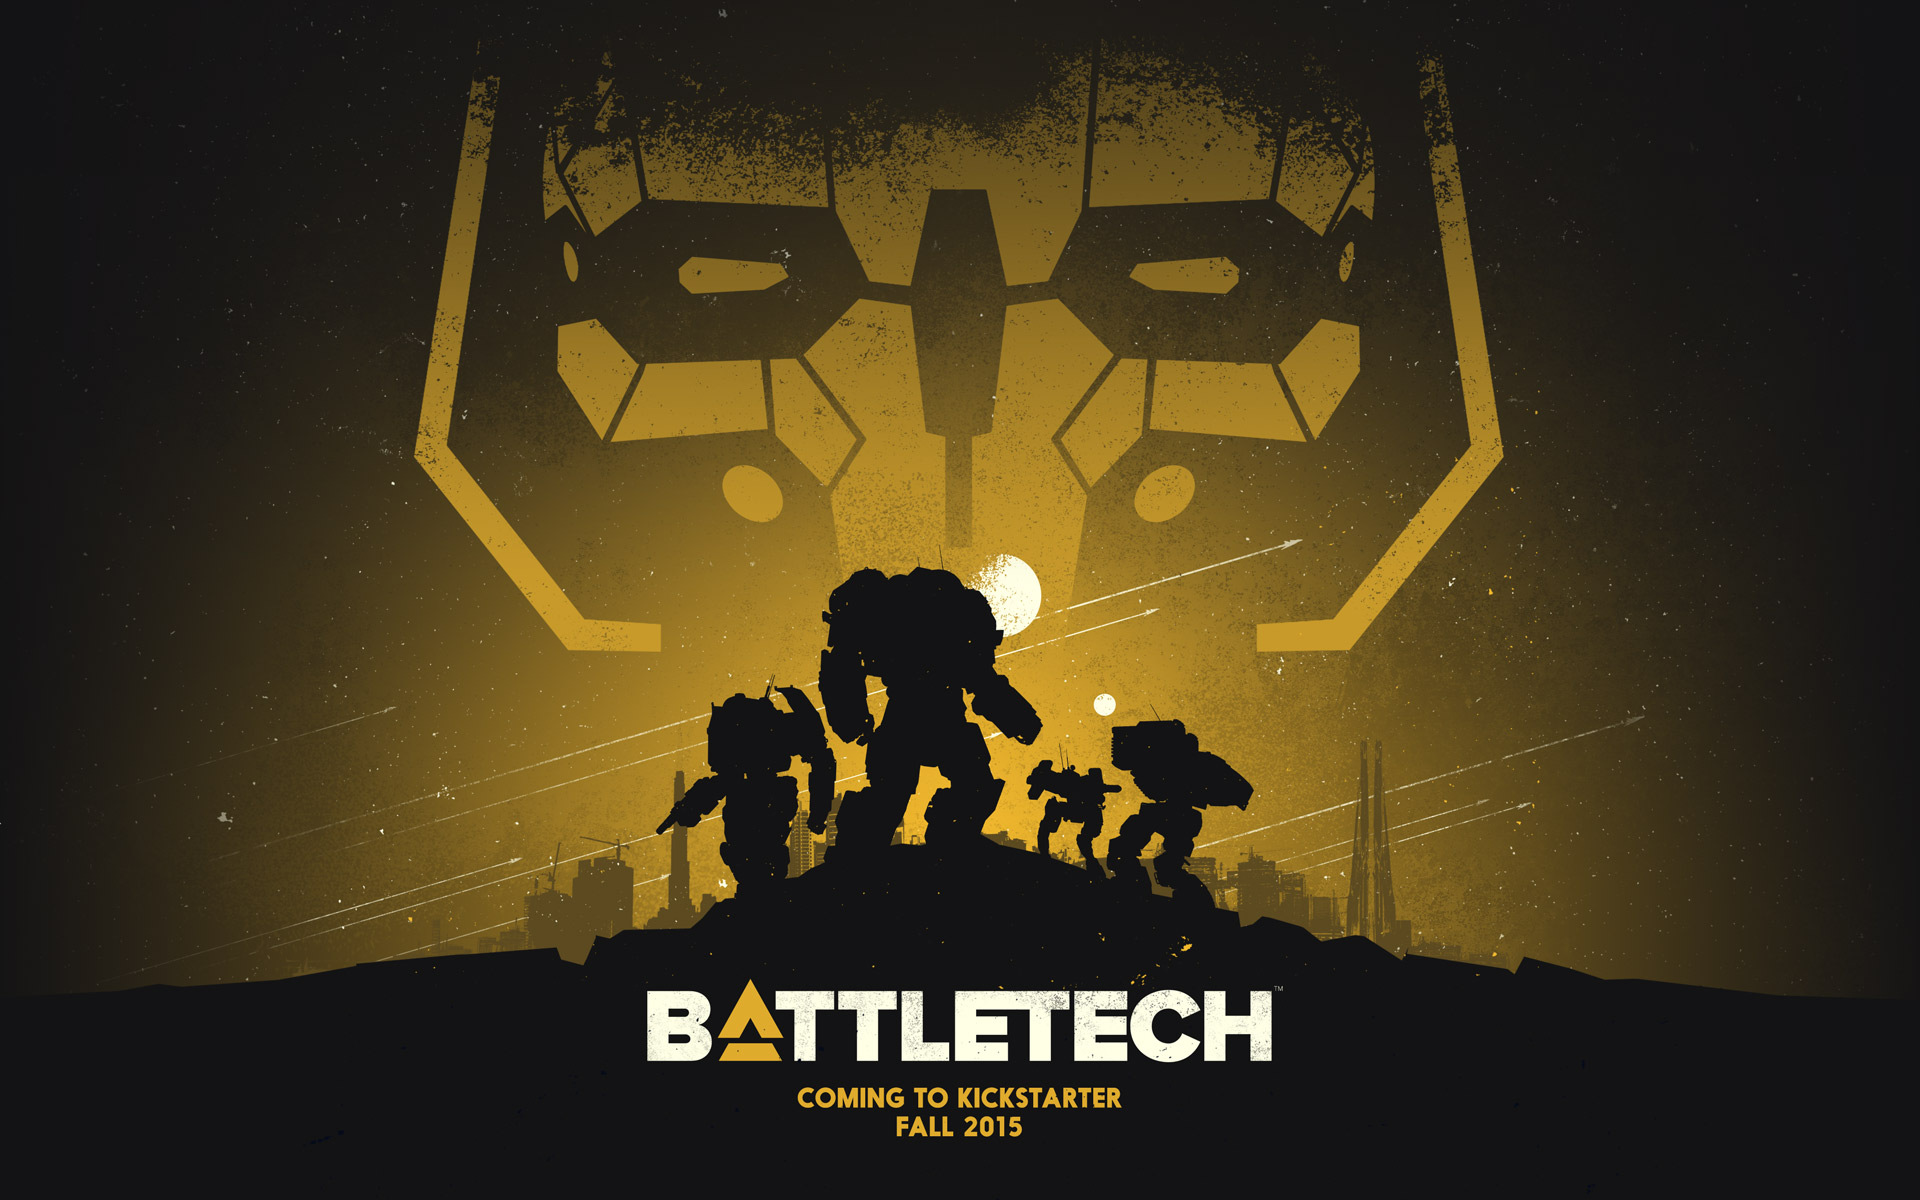 New BattleTech Game